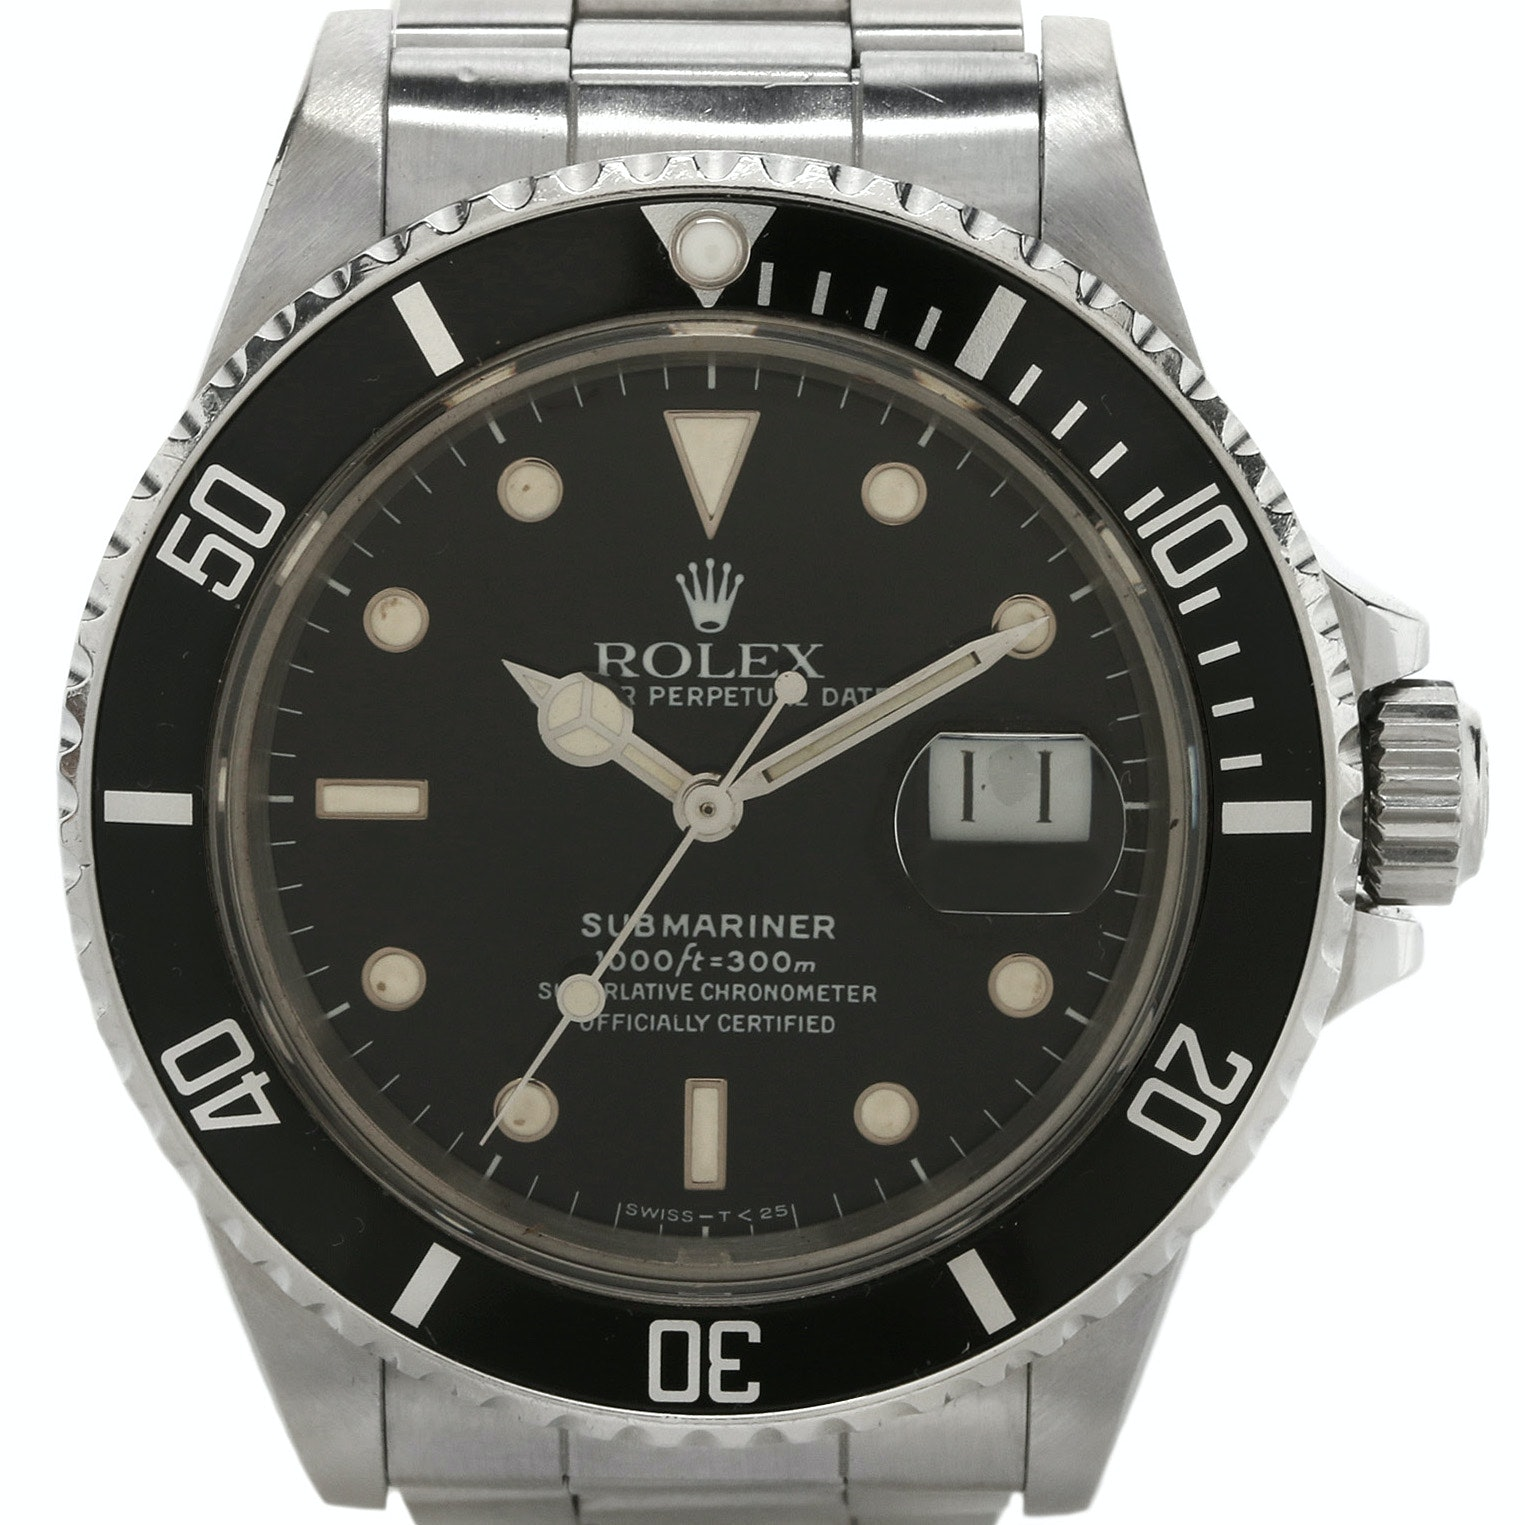 Rolex Submariner Date Stainless Steel Automatic Wristwatch, Circa 1987